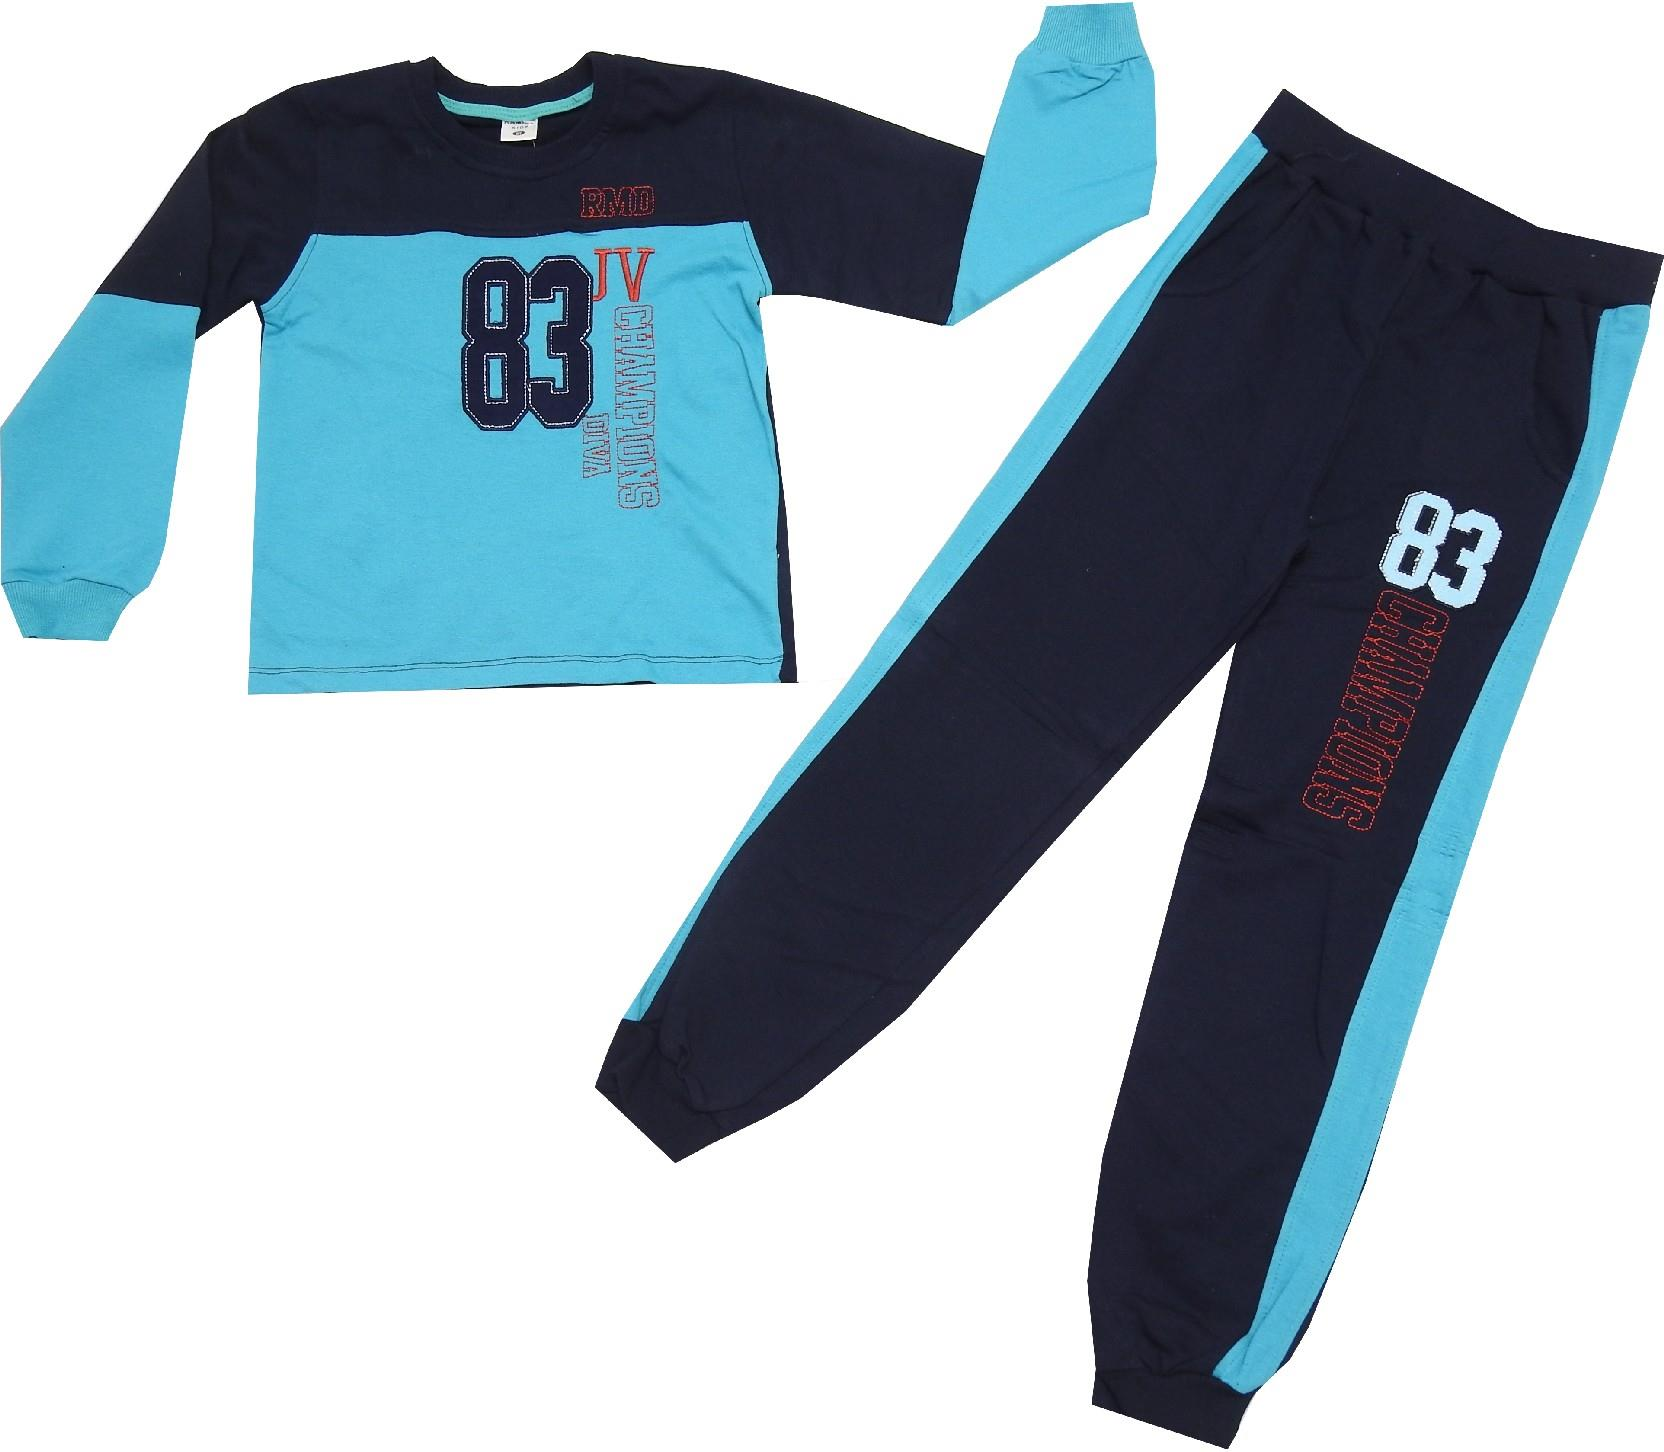 WHOLESALE 83 PRINTED DESIGN SWEATSHIRT AND TROUSER DOUBLE SET FOR BOY (5-6-7-8 AGE)